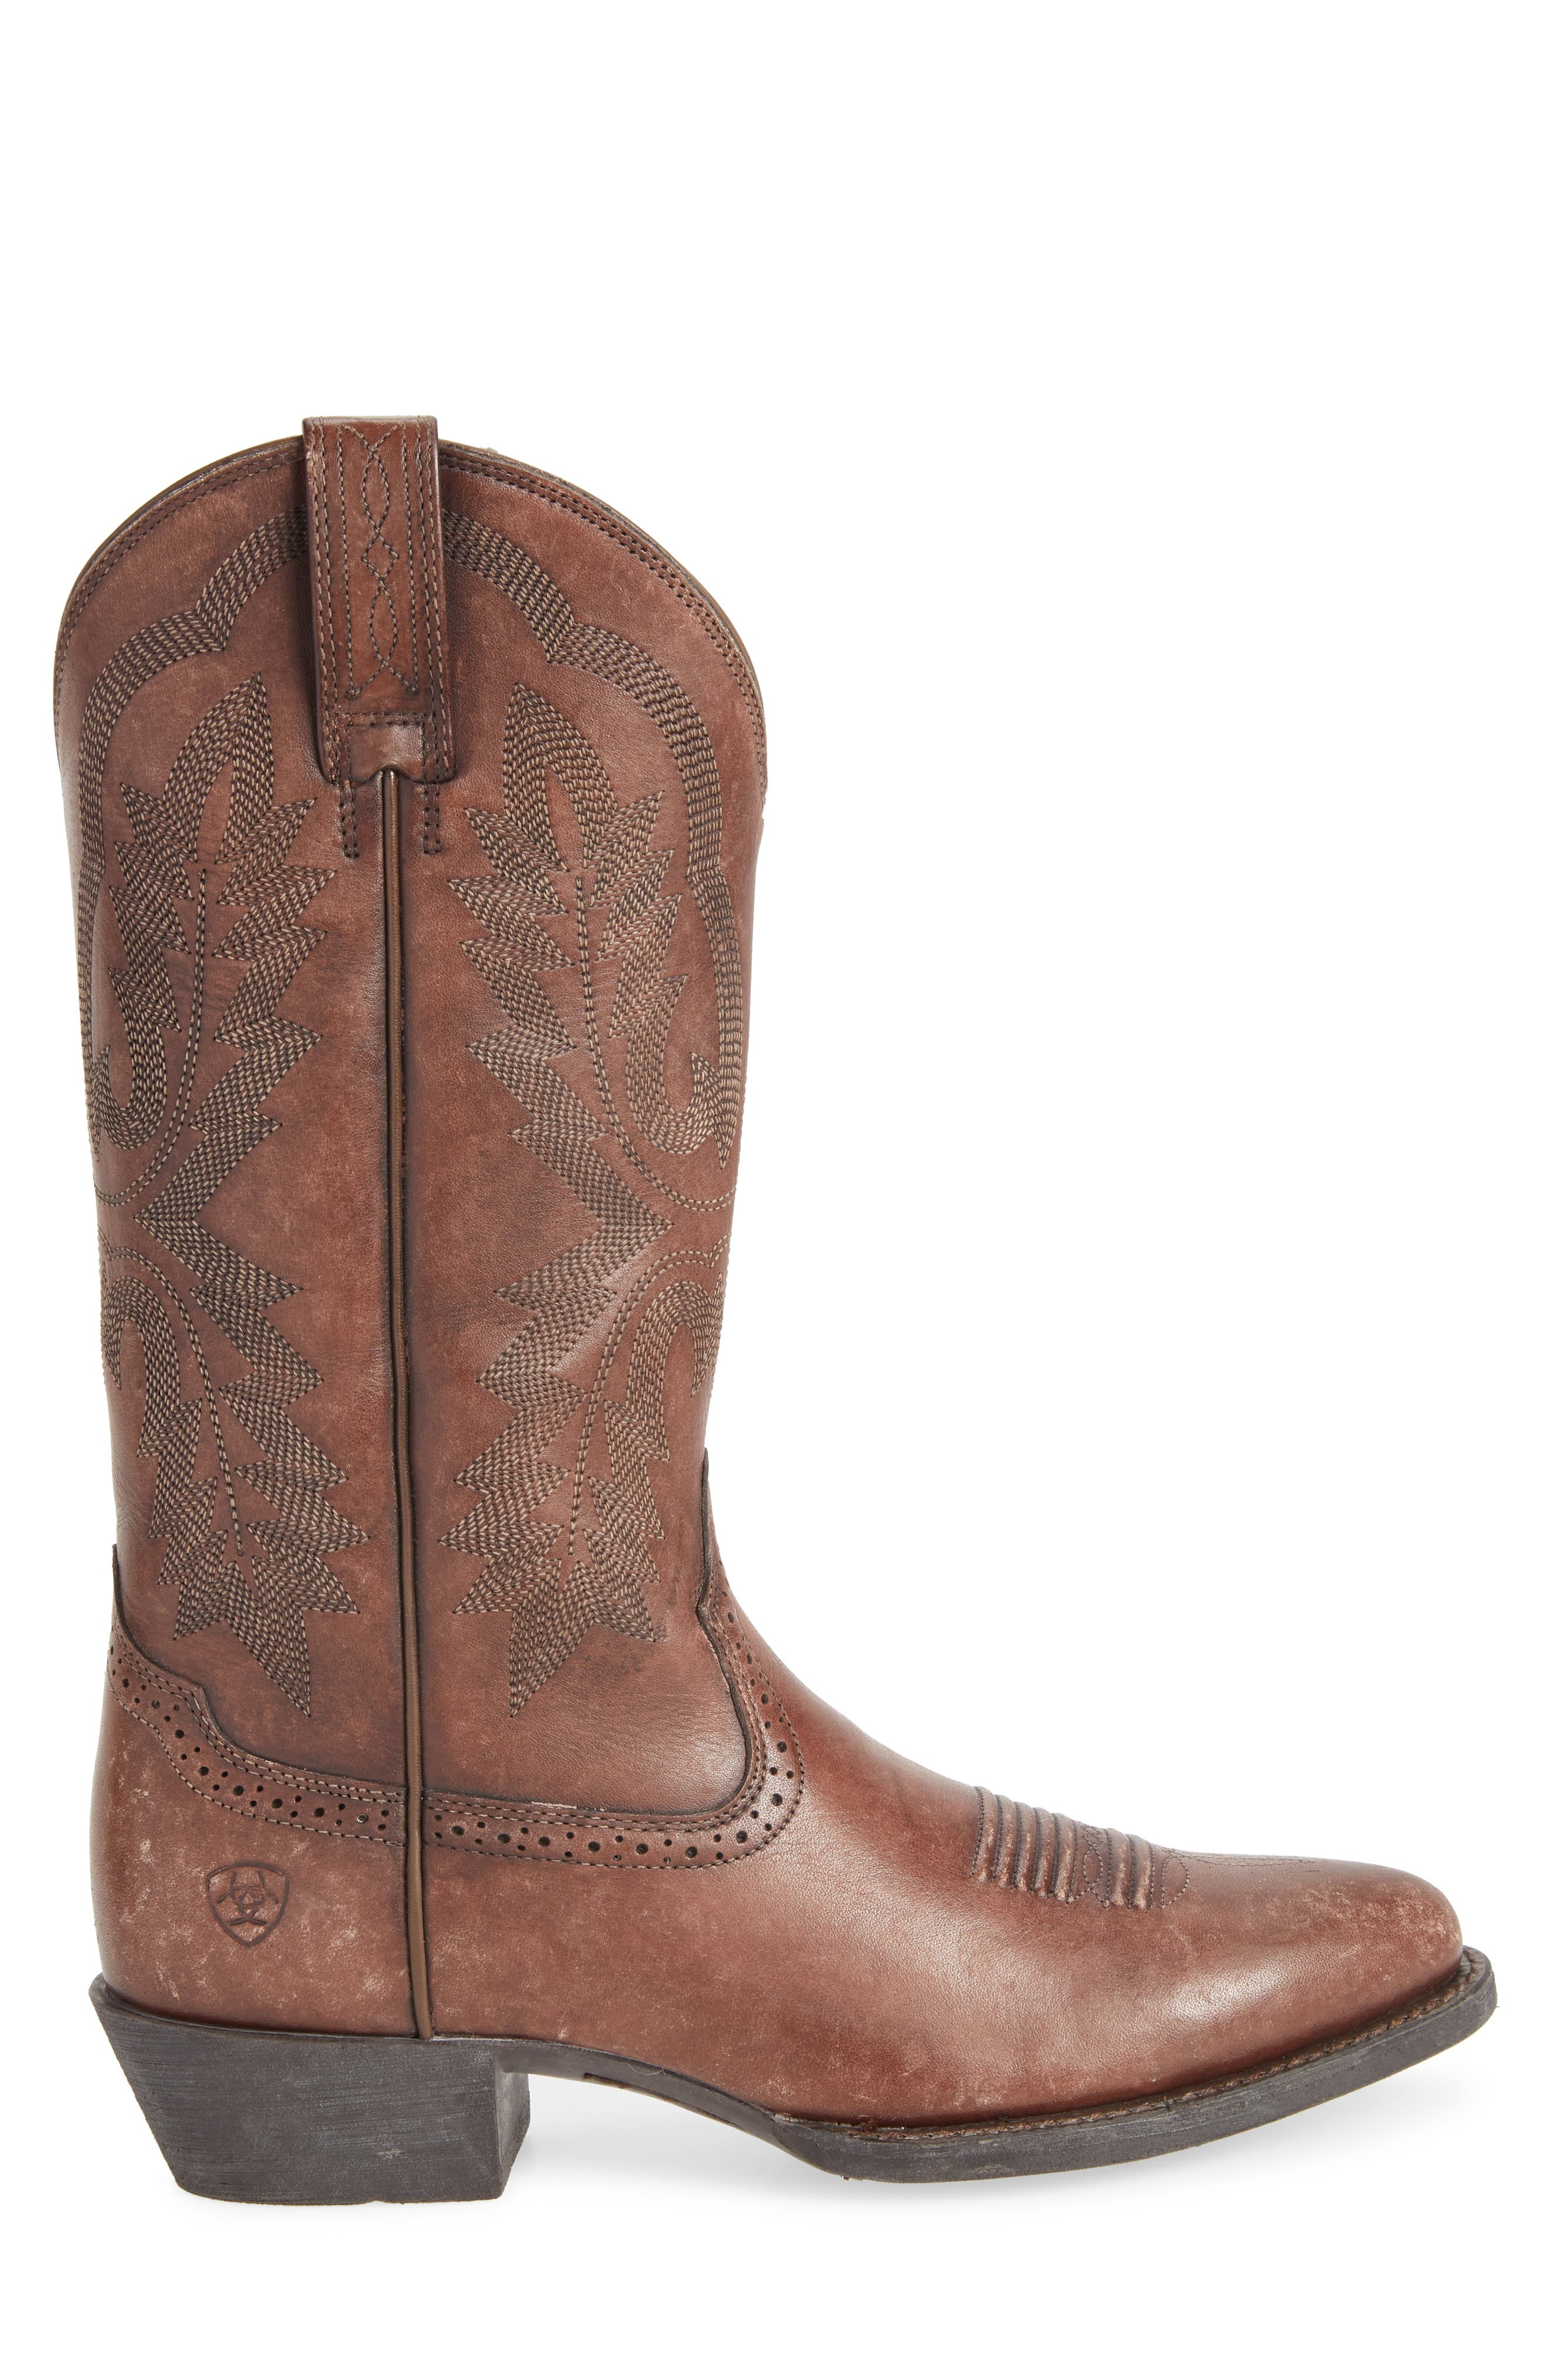 Heritage Calhoun Western R-Toe Boot,                             Alternate thumbnail 3, color,                             Natural Brown Leather